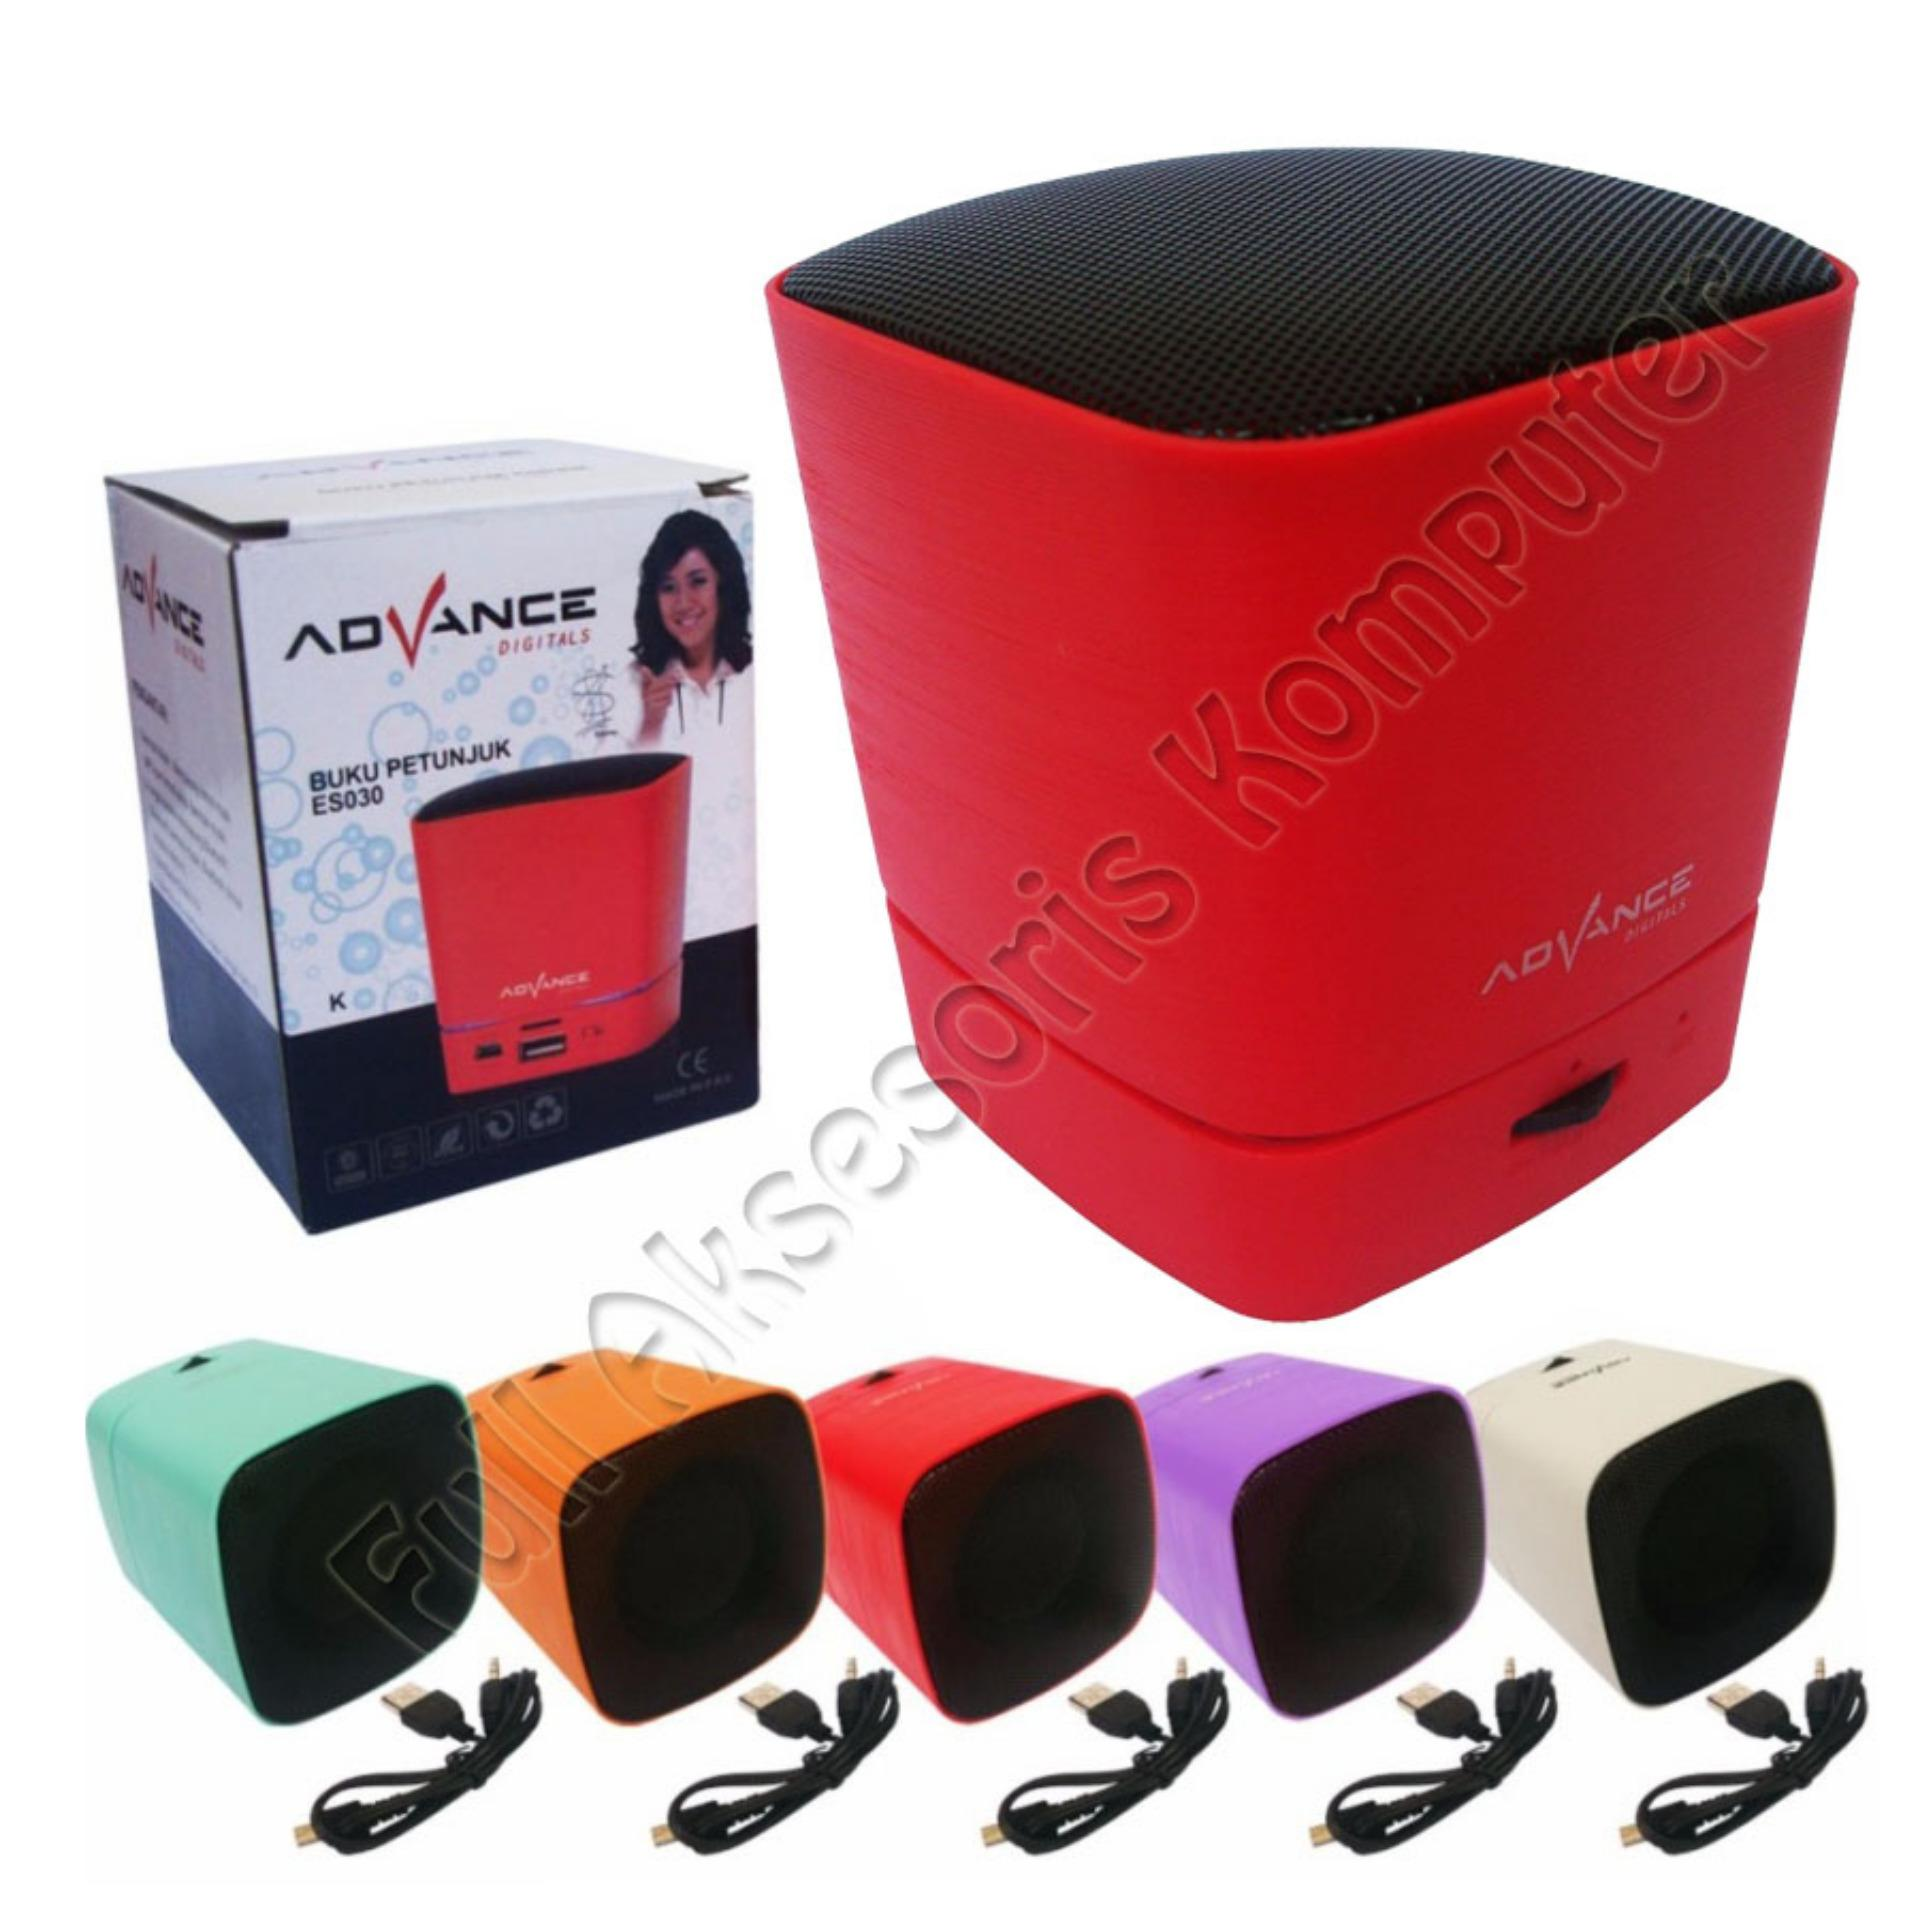 Harga Advance Mini Speaker Portable Bluetooth Es030K Merah Yg Bagus